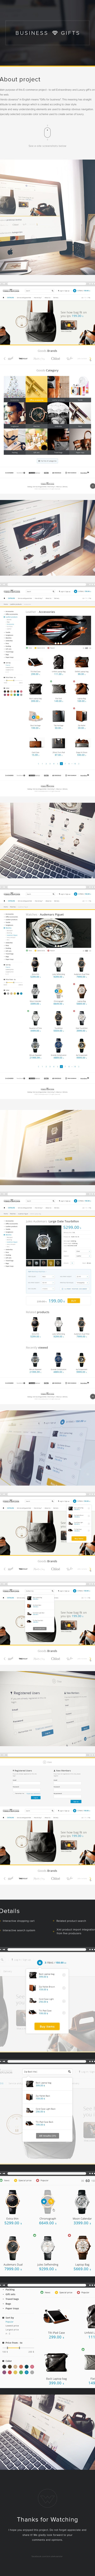 "E-Site ""Business Gifts"" Web Design by Simon Aleksander"